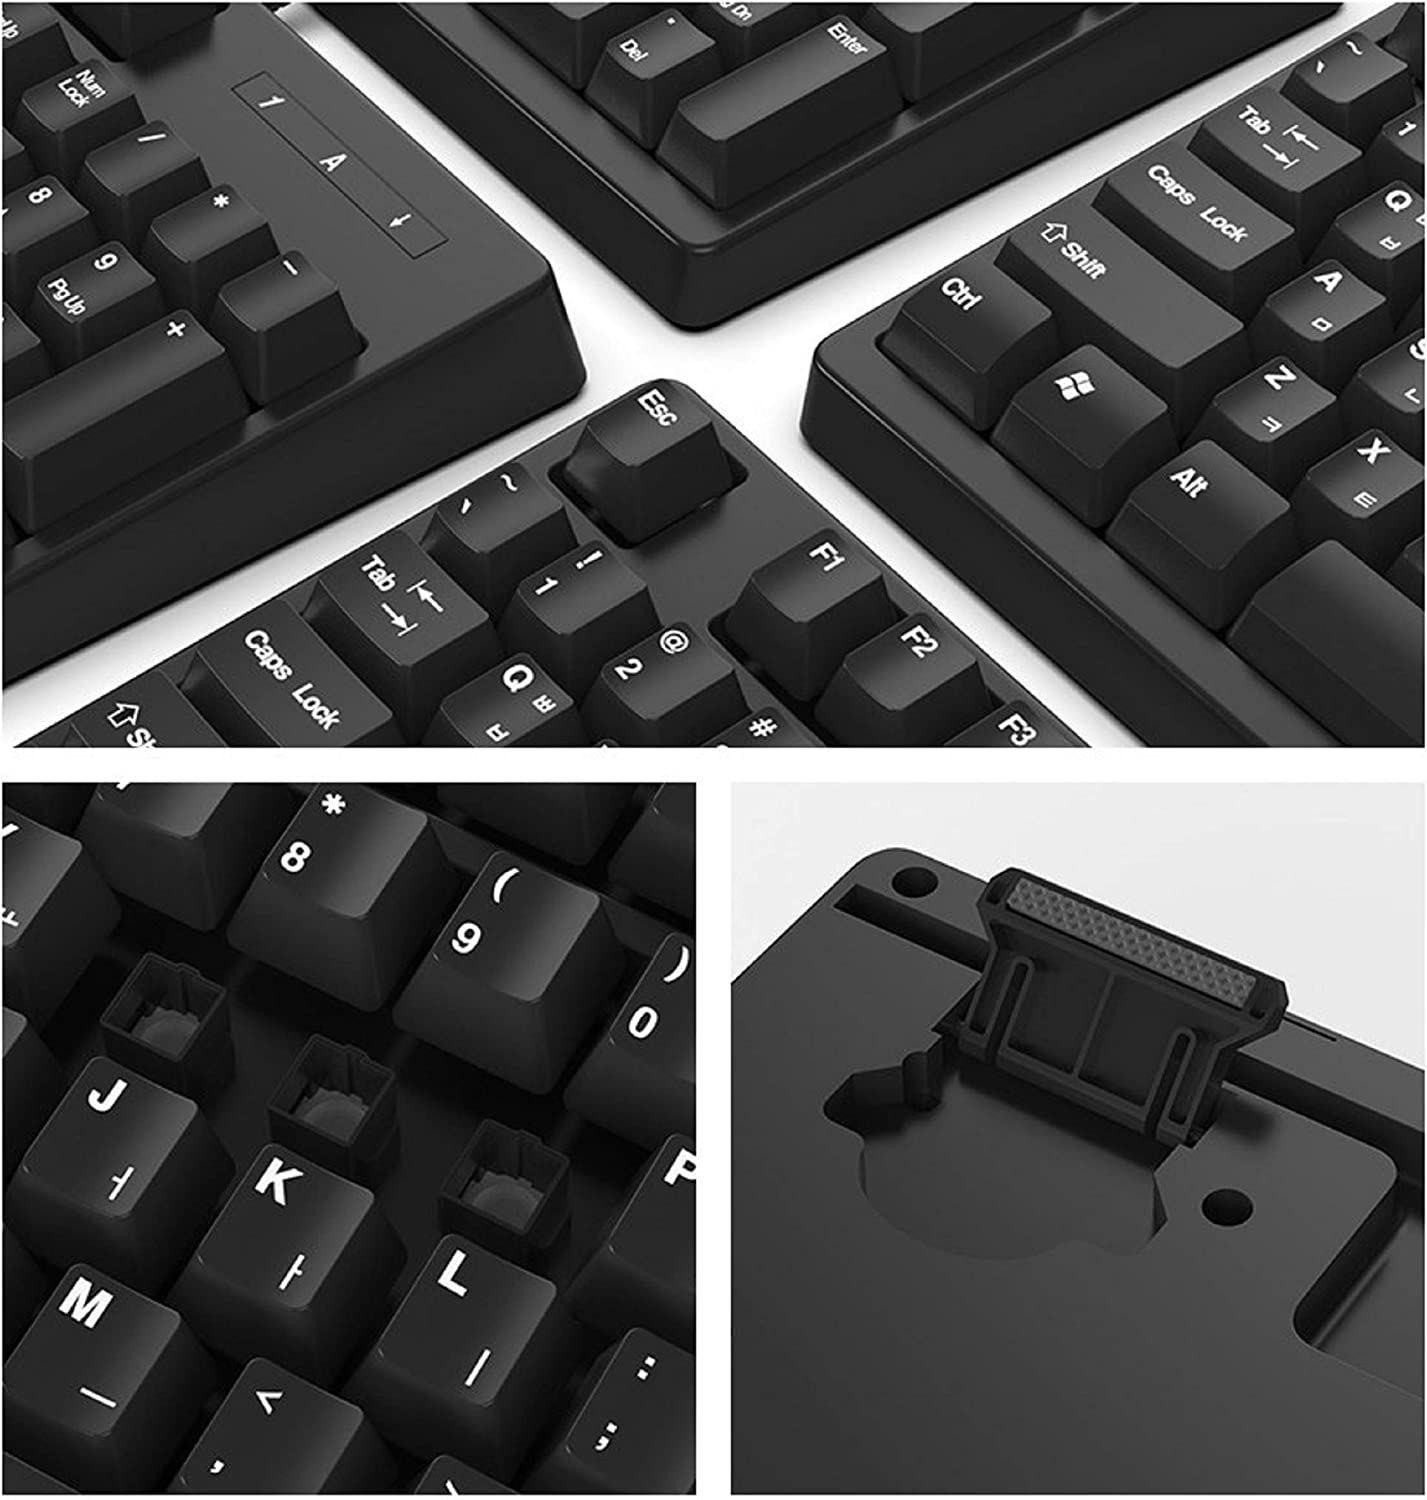 QSENN SEM-DT45 USB Wired Korean English Keyboard with Cover Skin Protector for PC